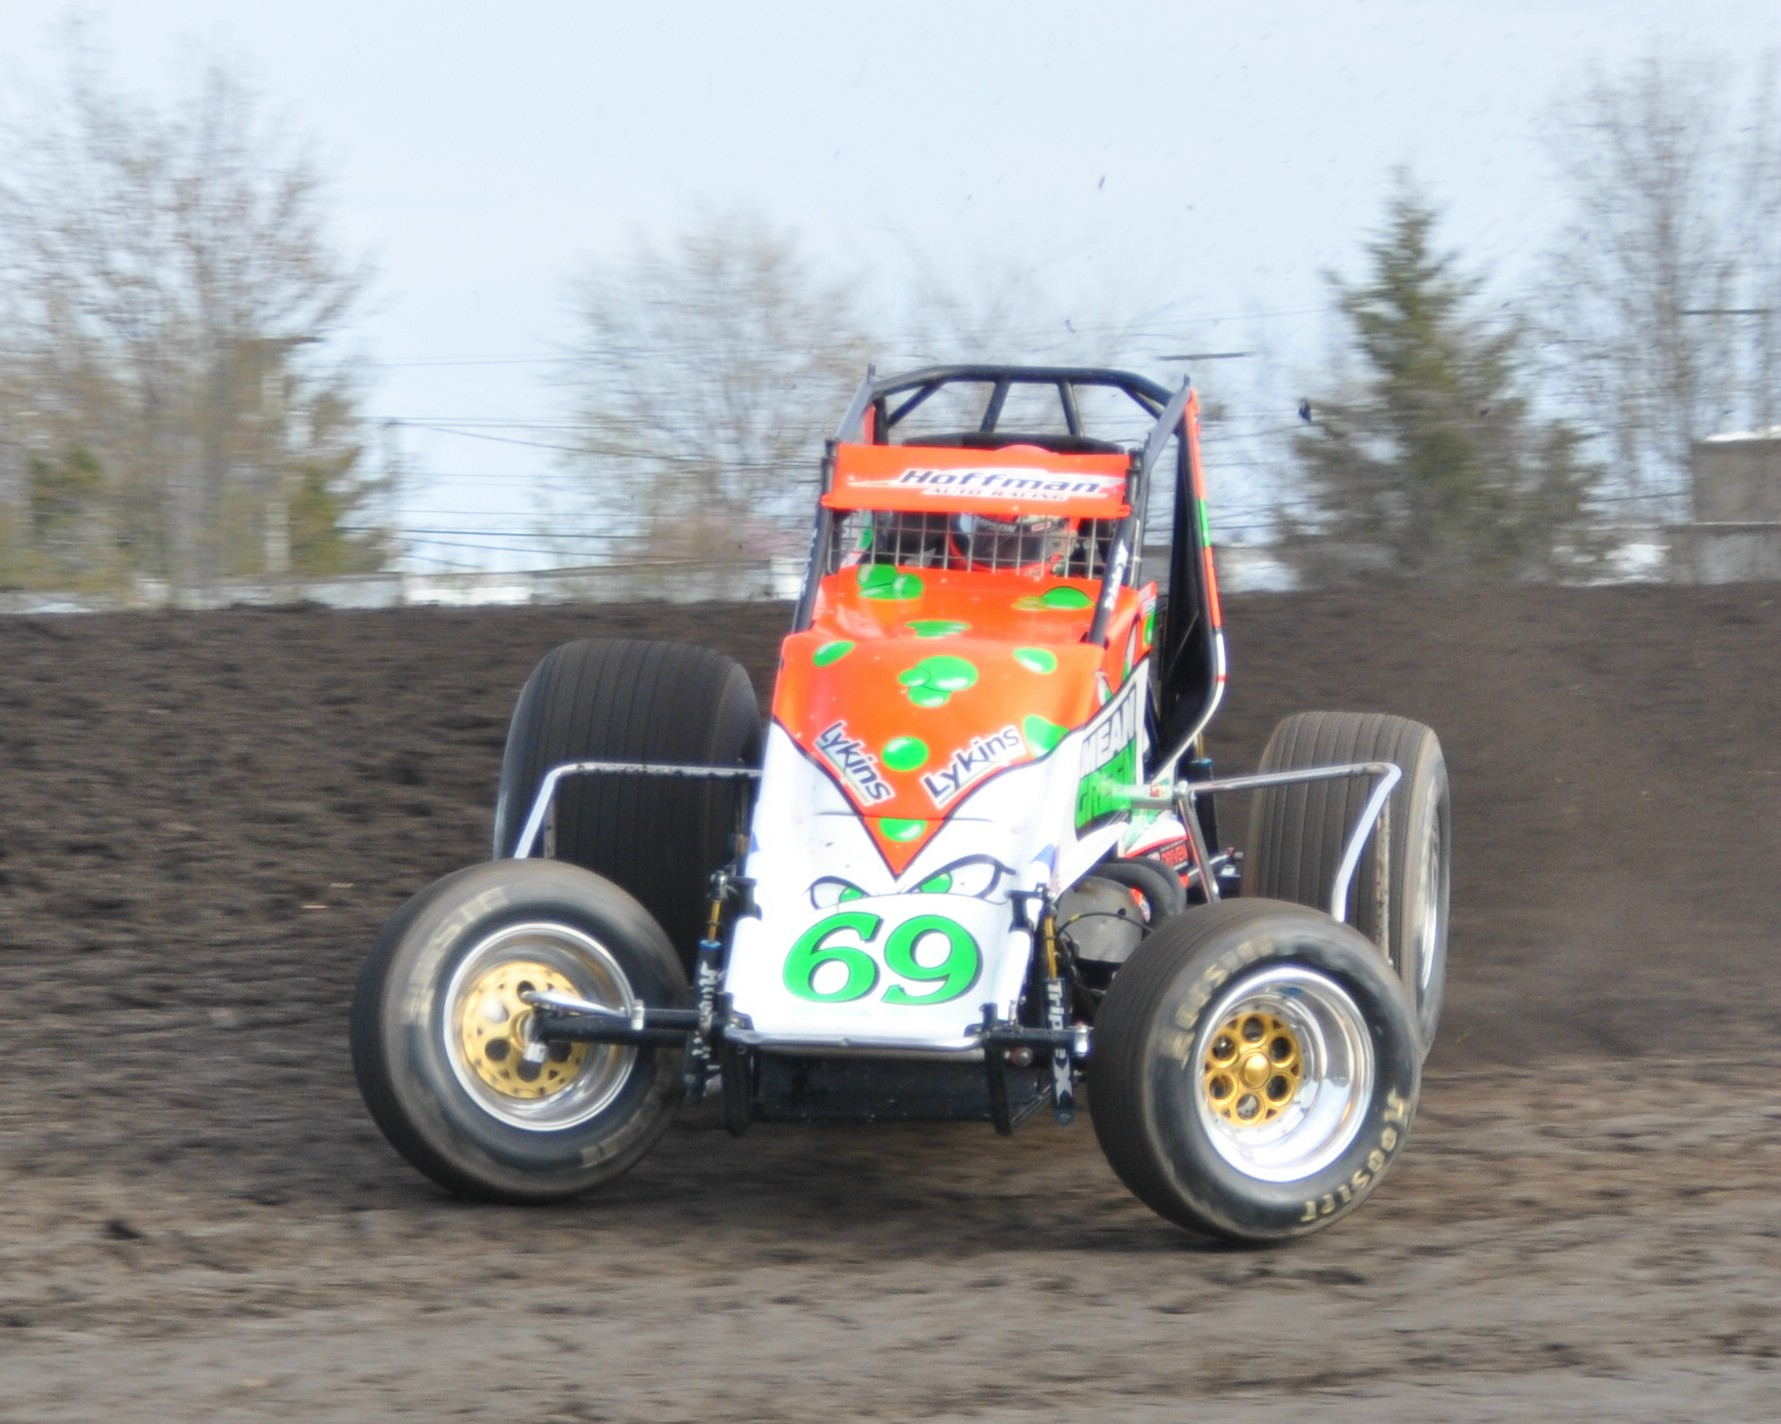 USAC Schedule Picks Up With Larry Rice